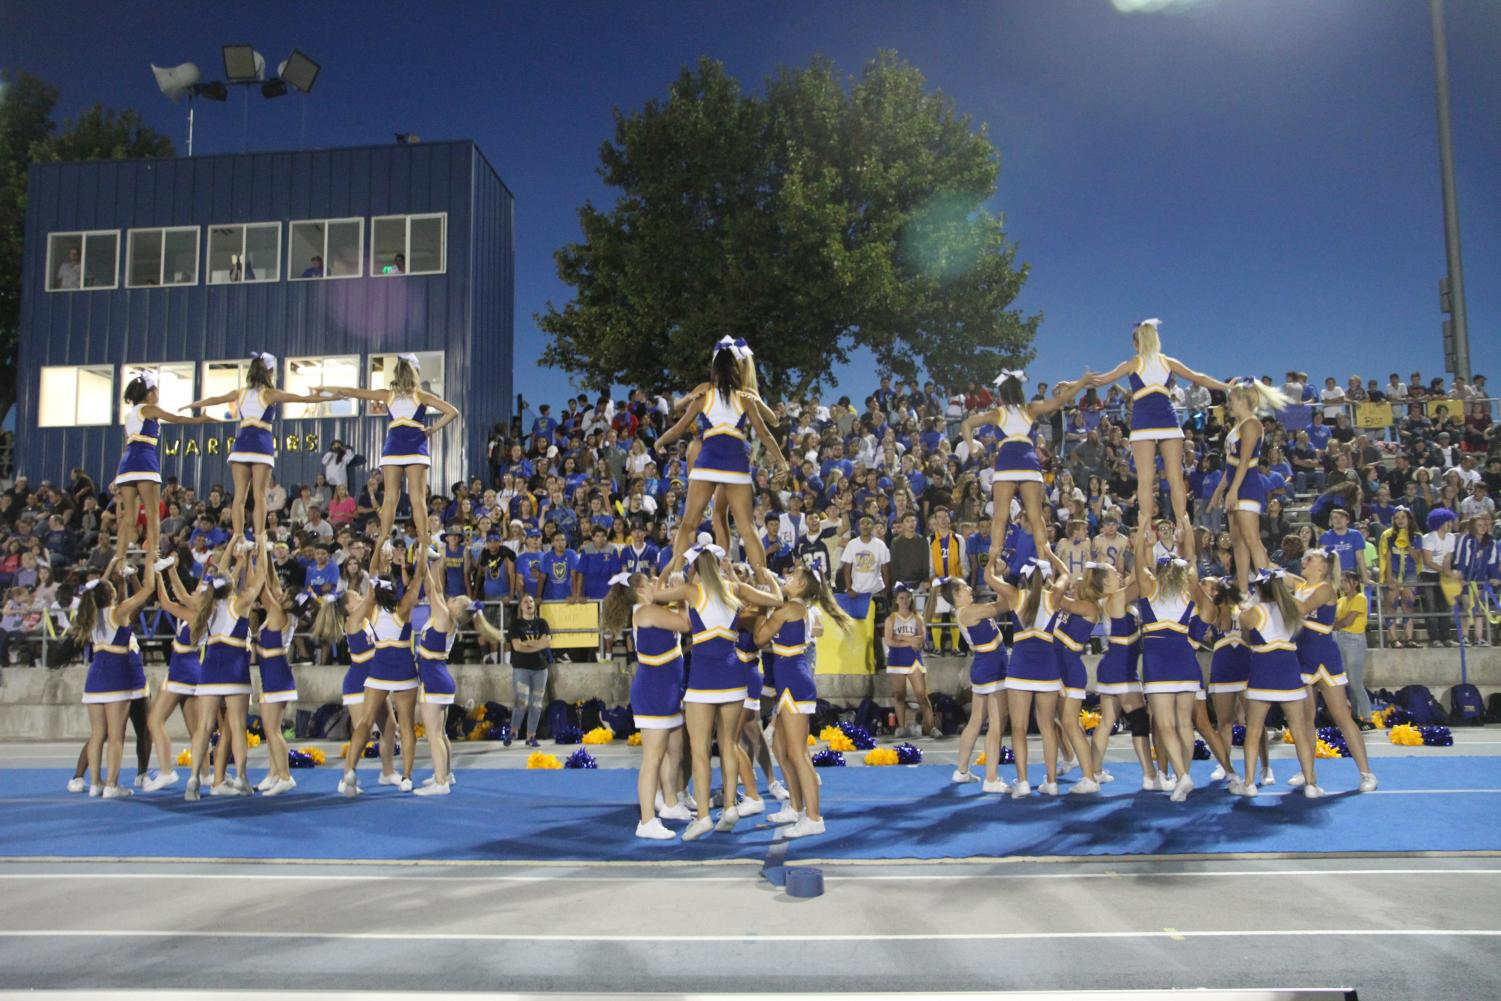 Cheerleaders, performing a routine to cheer on the football team.